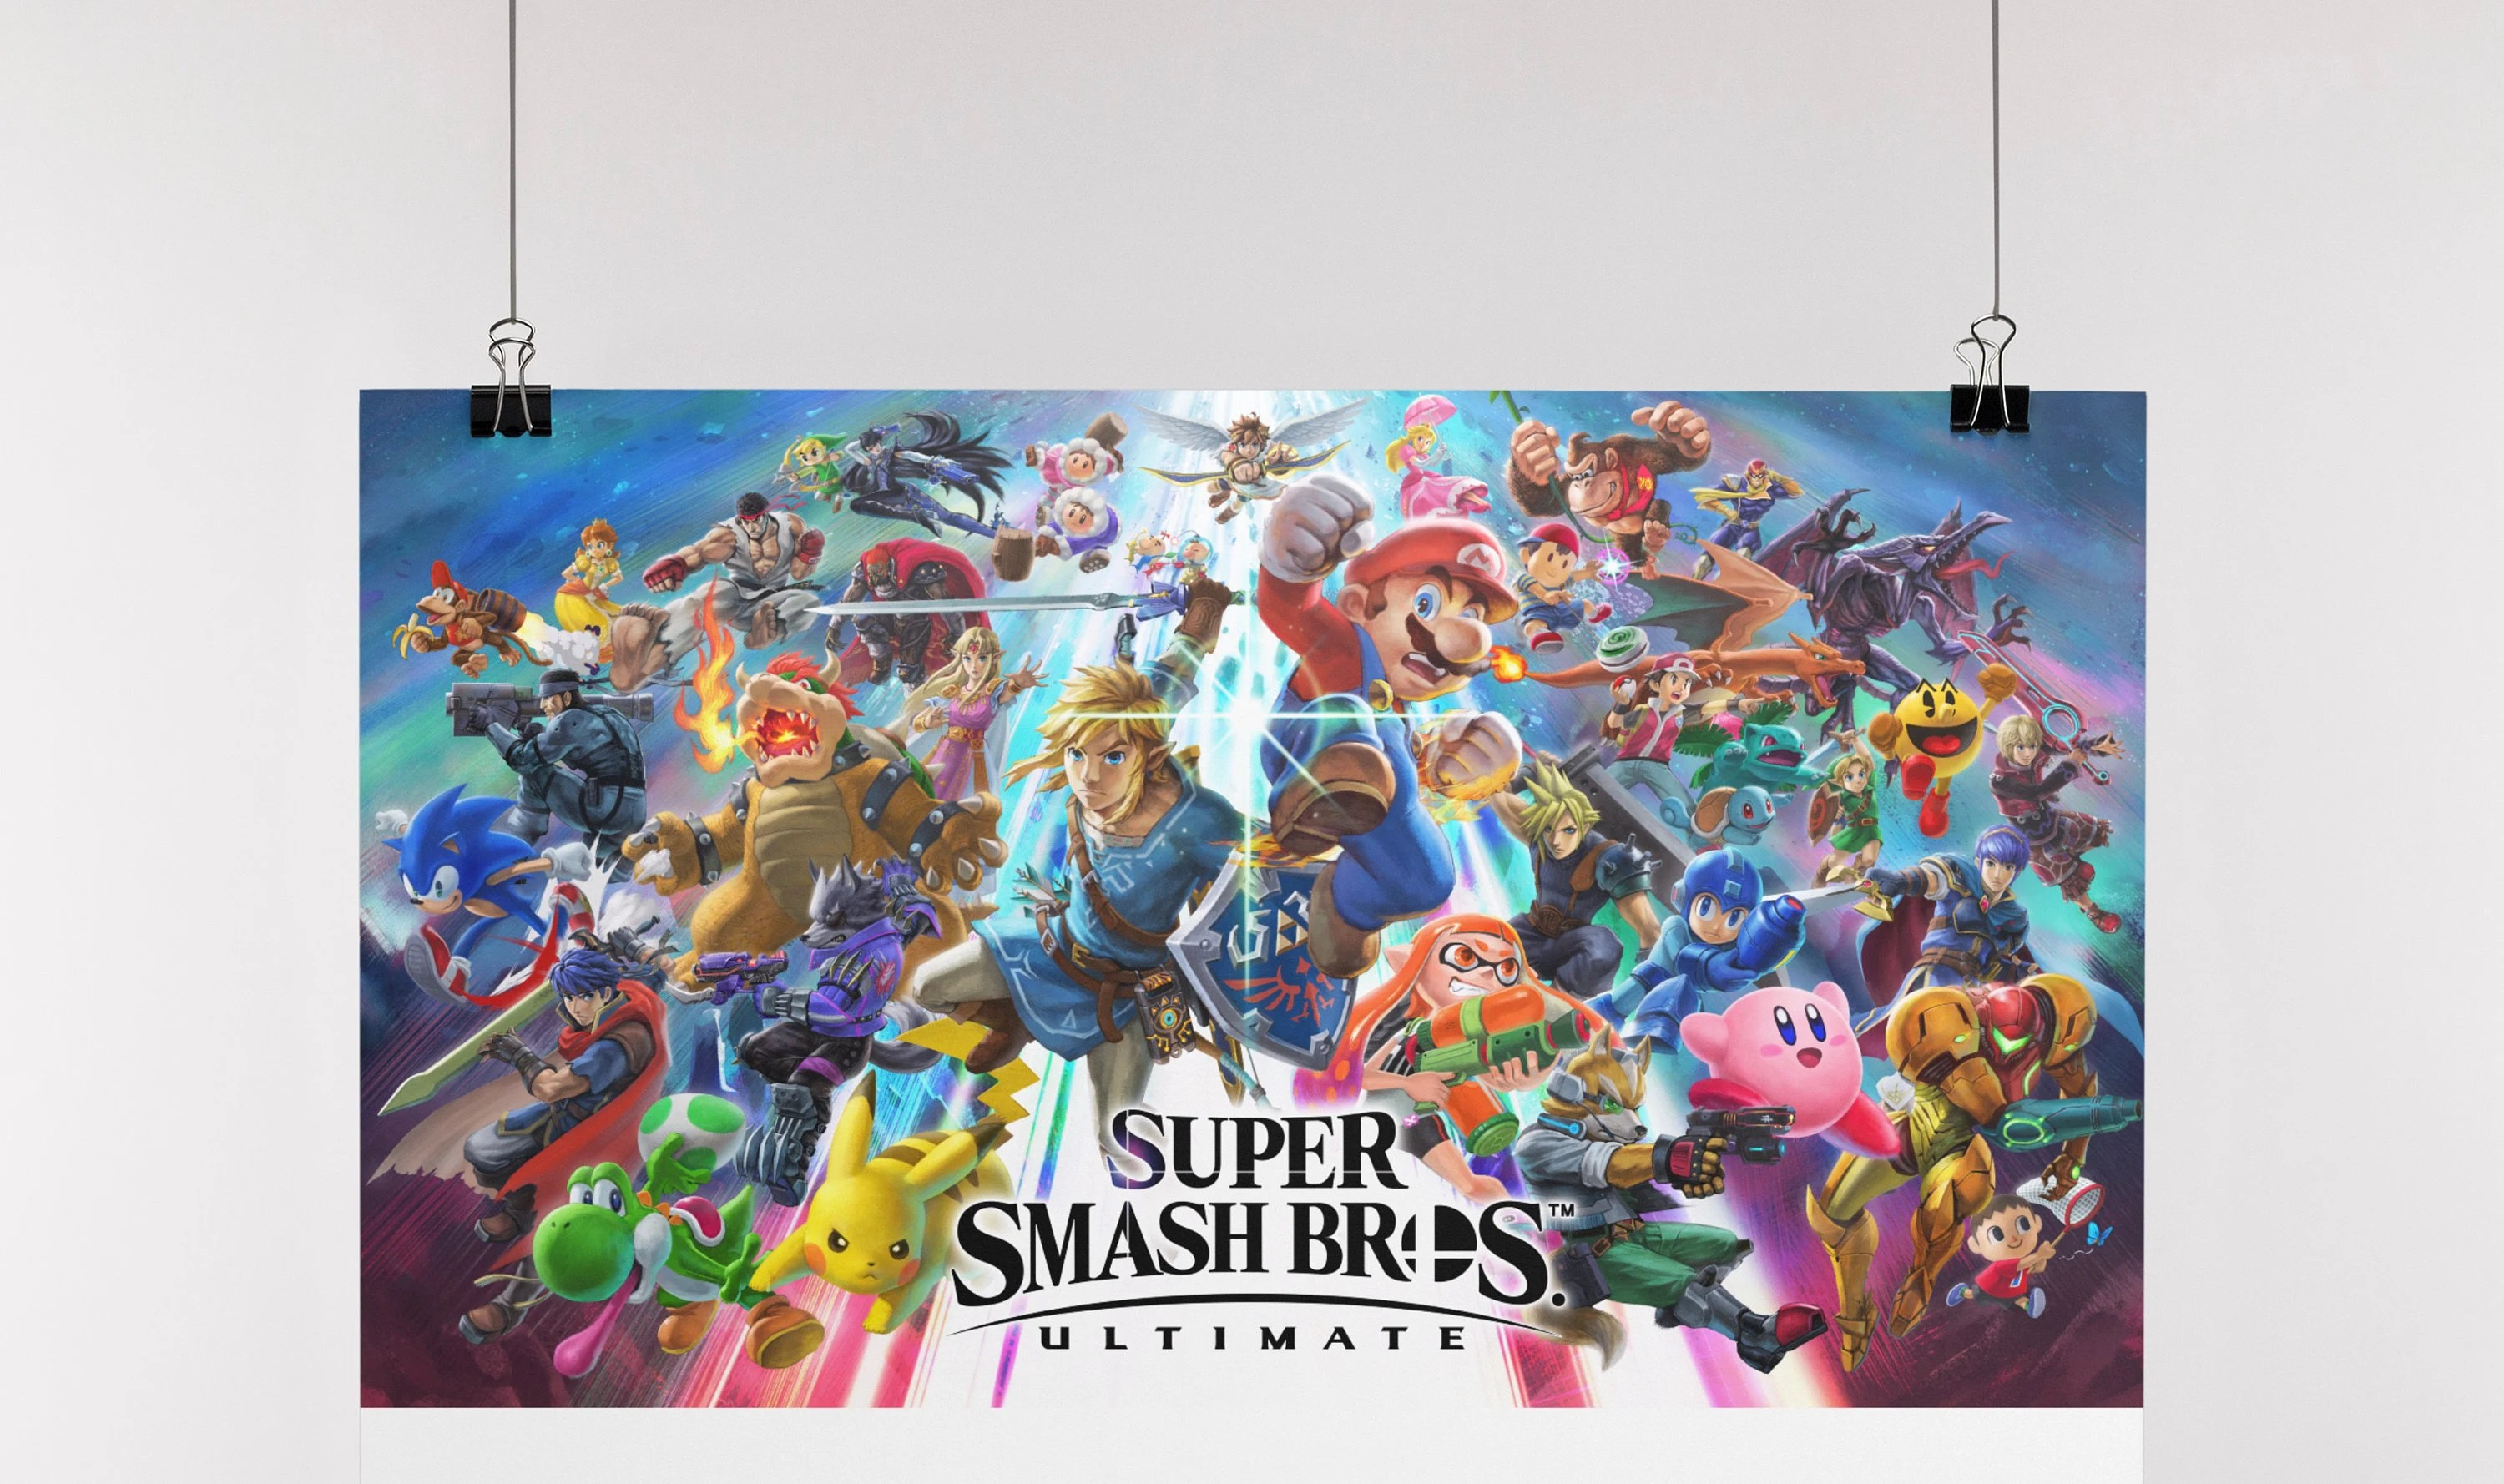 super smash bros ultimate artwork box art poster print limited edition wall art various sizes available hand drawn artwork wall posters